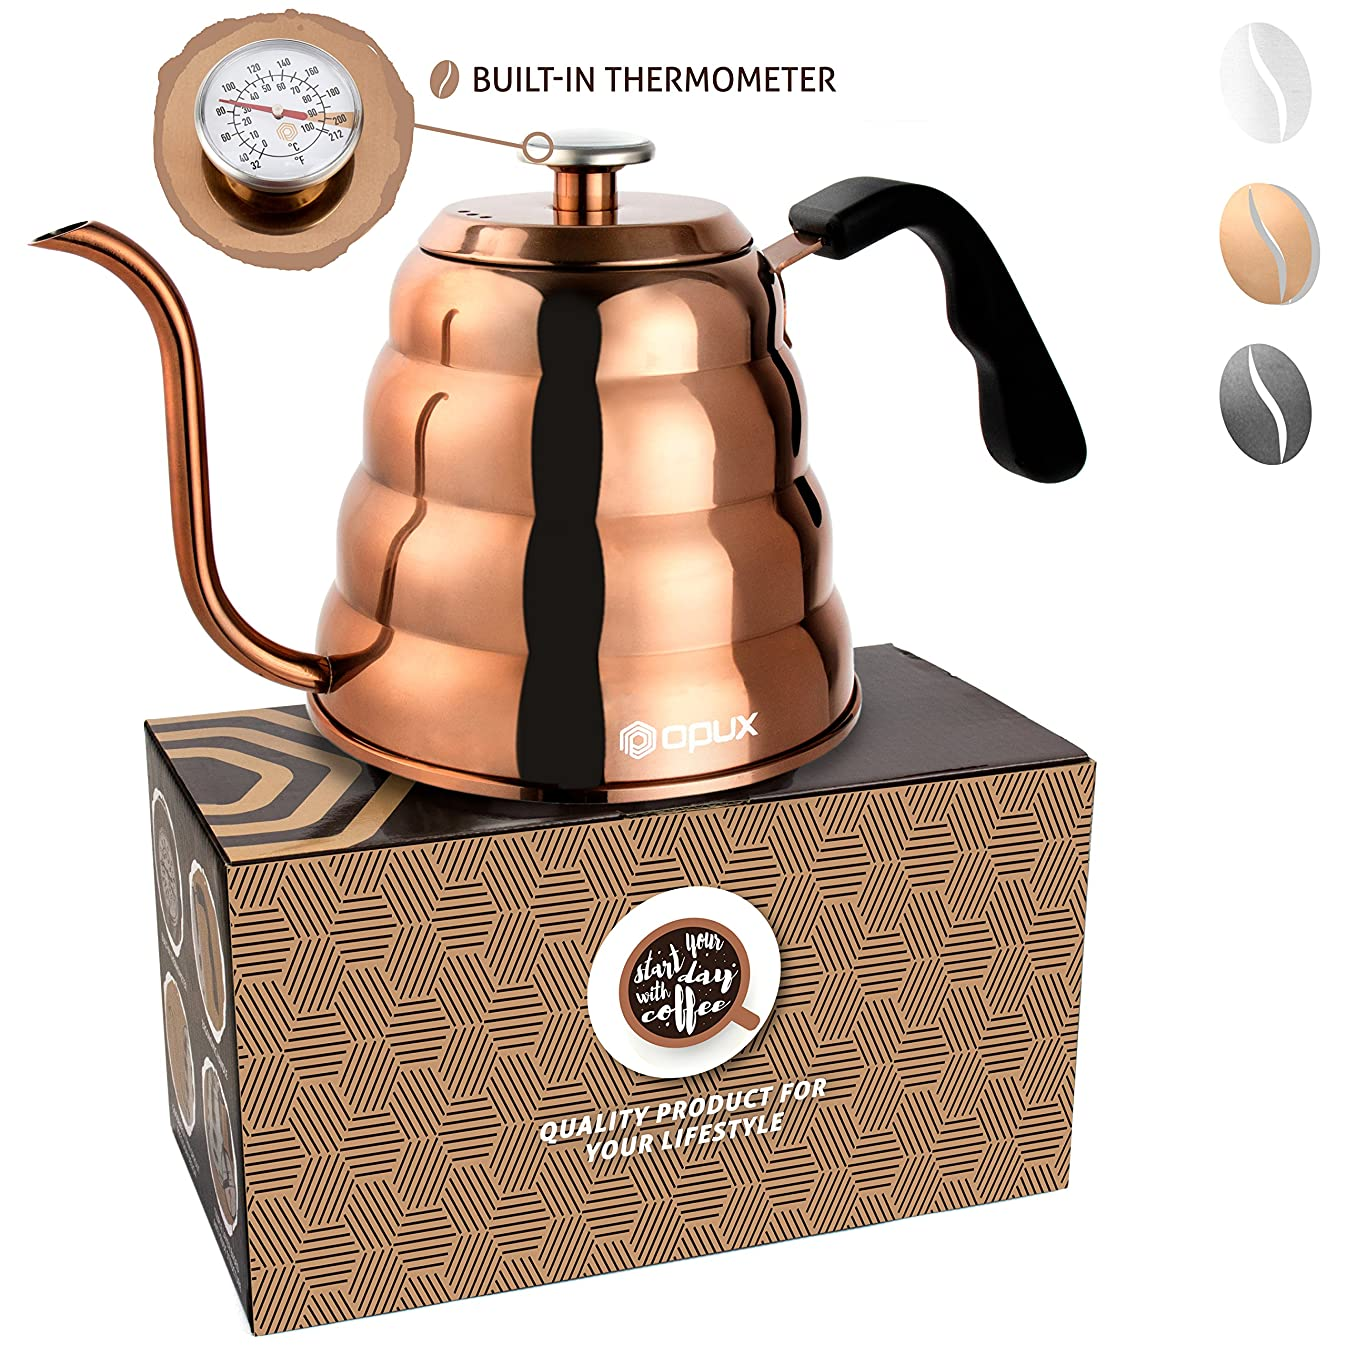 OPUX Gooseneck Pour Over Coffee Kettle with Thermometer | Premium Grade Stainless Steel Drip Kettle for Home Coffee Brewing, Tea, Barista | 40 fl oz (Glossy Copper, Solid Top)